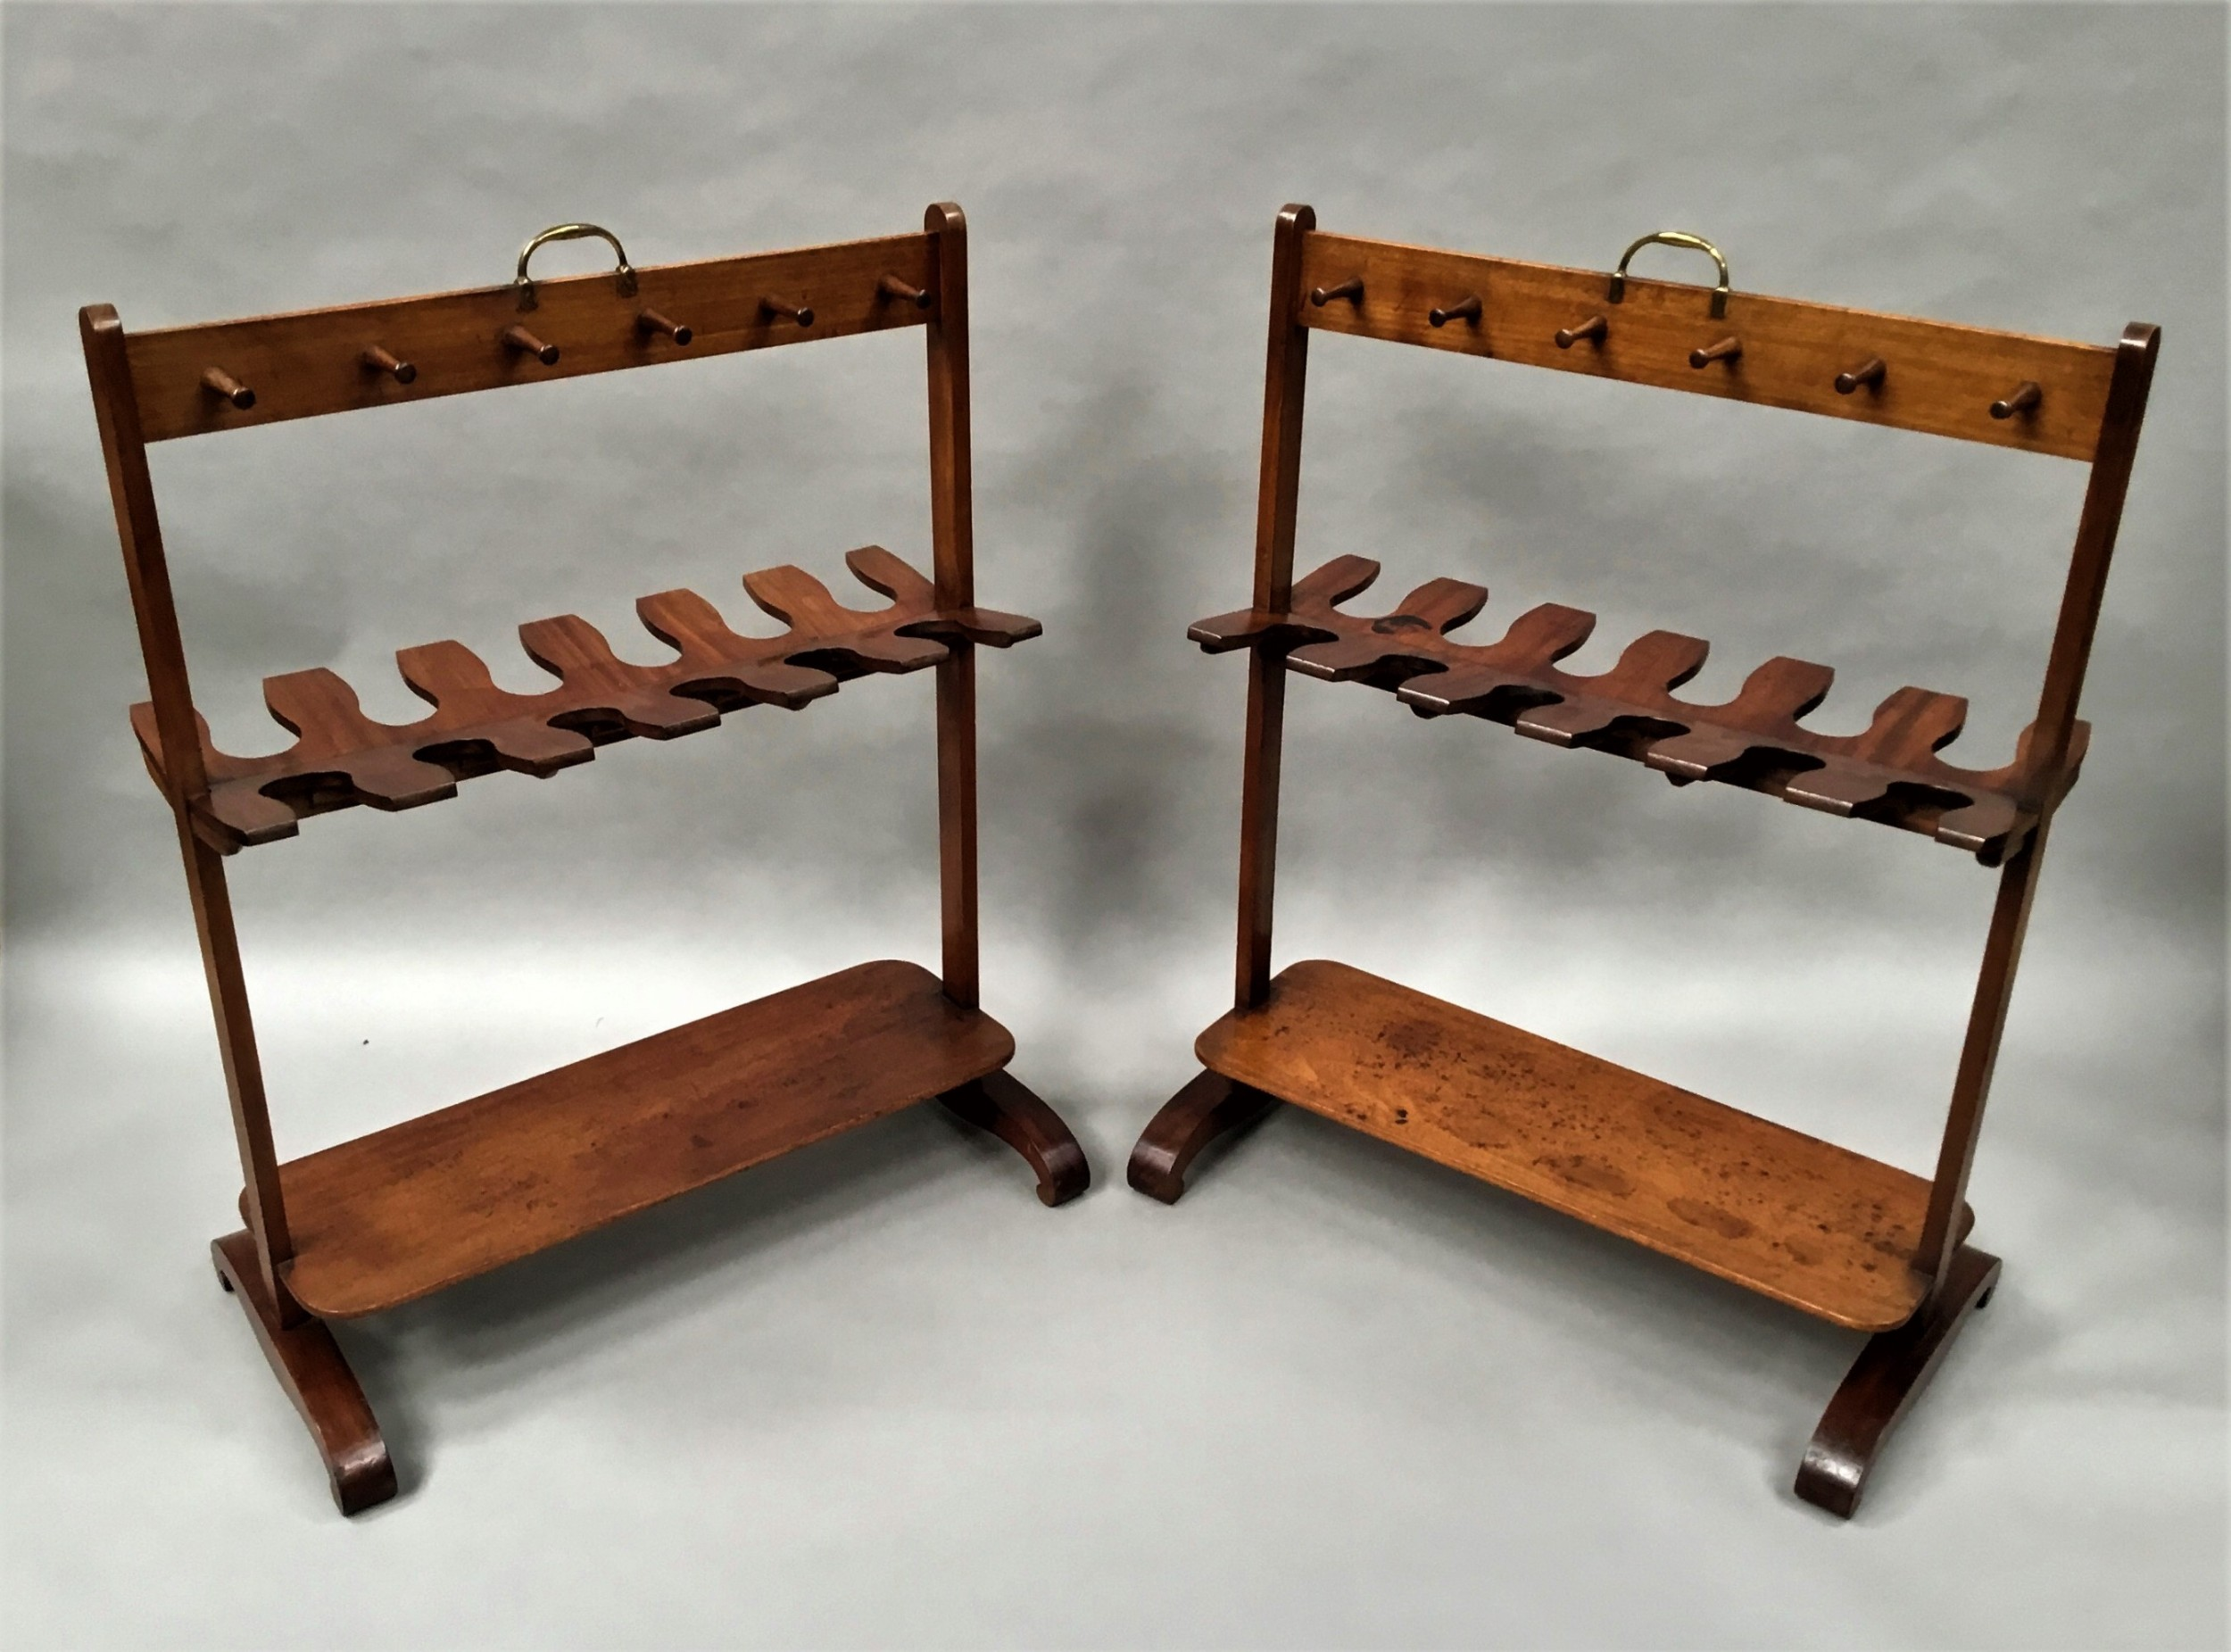 pair regency mahogany 'country house' whip and boot racks stands attributed to gillows